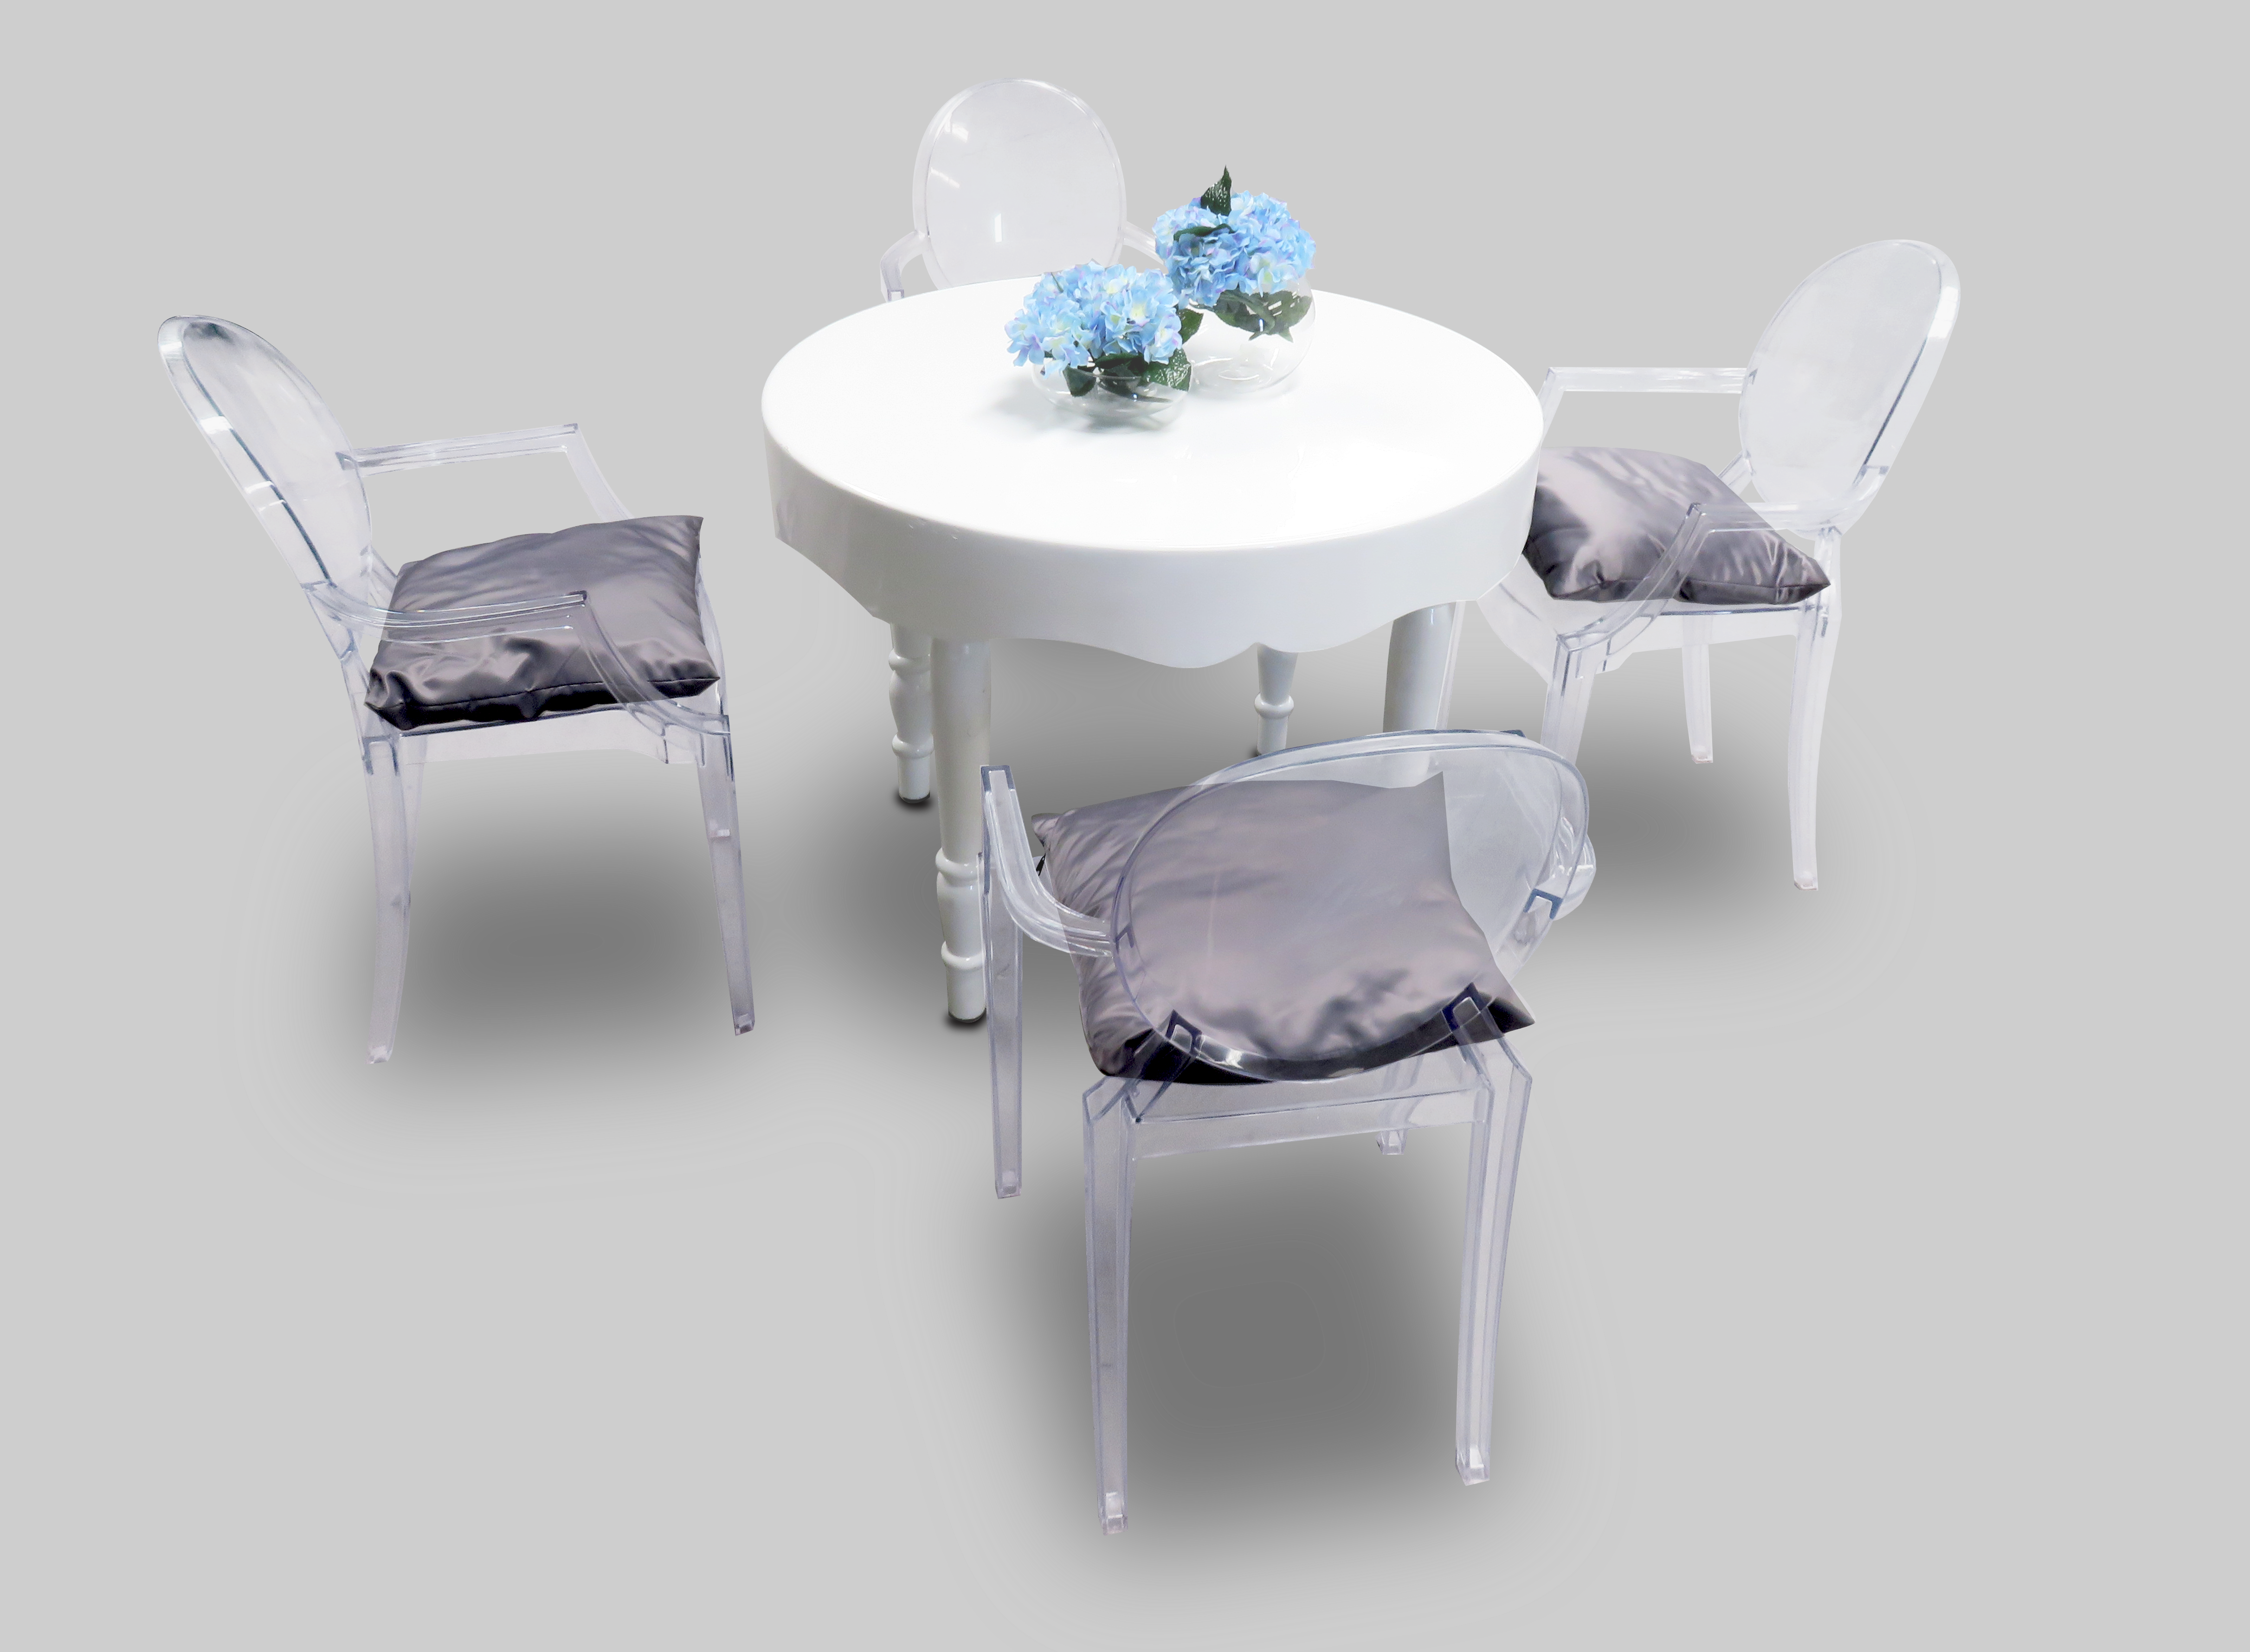 round white dining table. Avalon Curved Round White Dining Table Setup With Dauphin Ghost Chairs 1 300x220 - Chic G